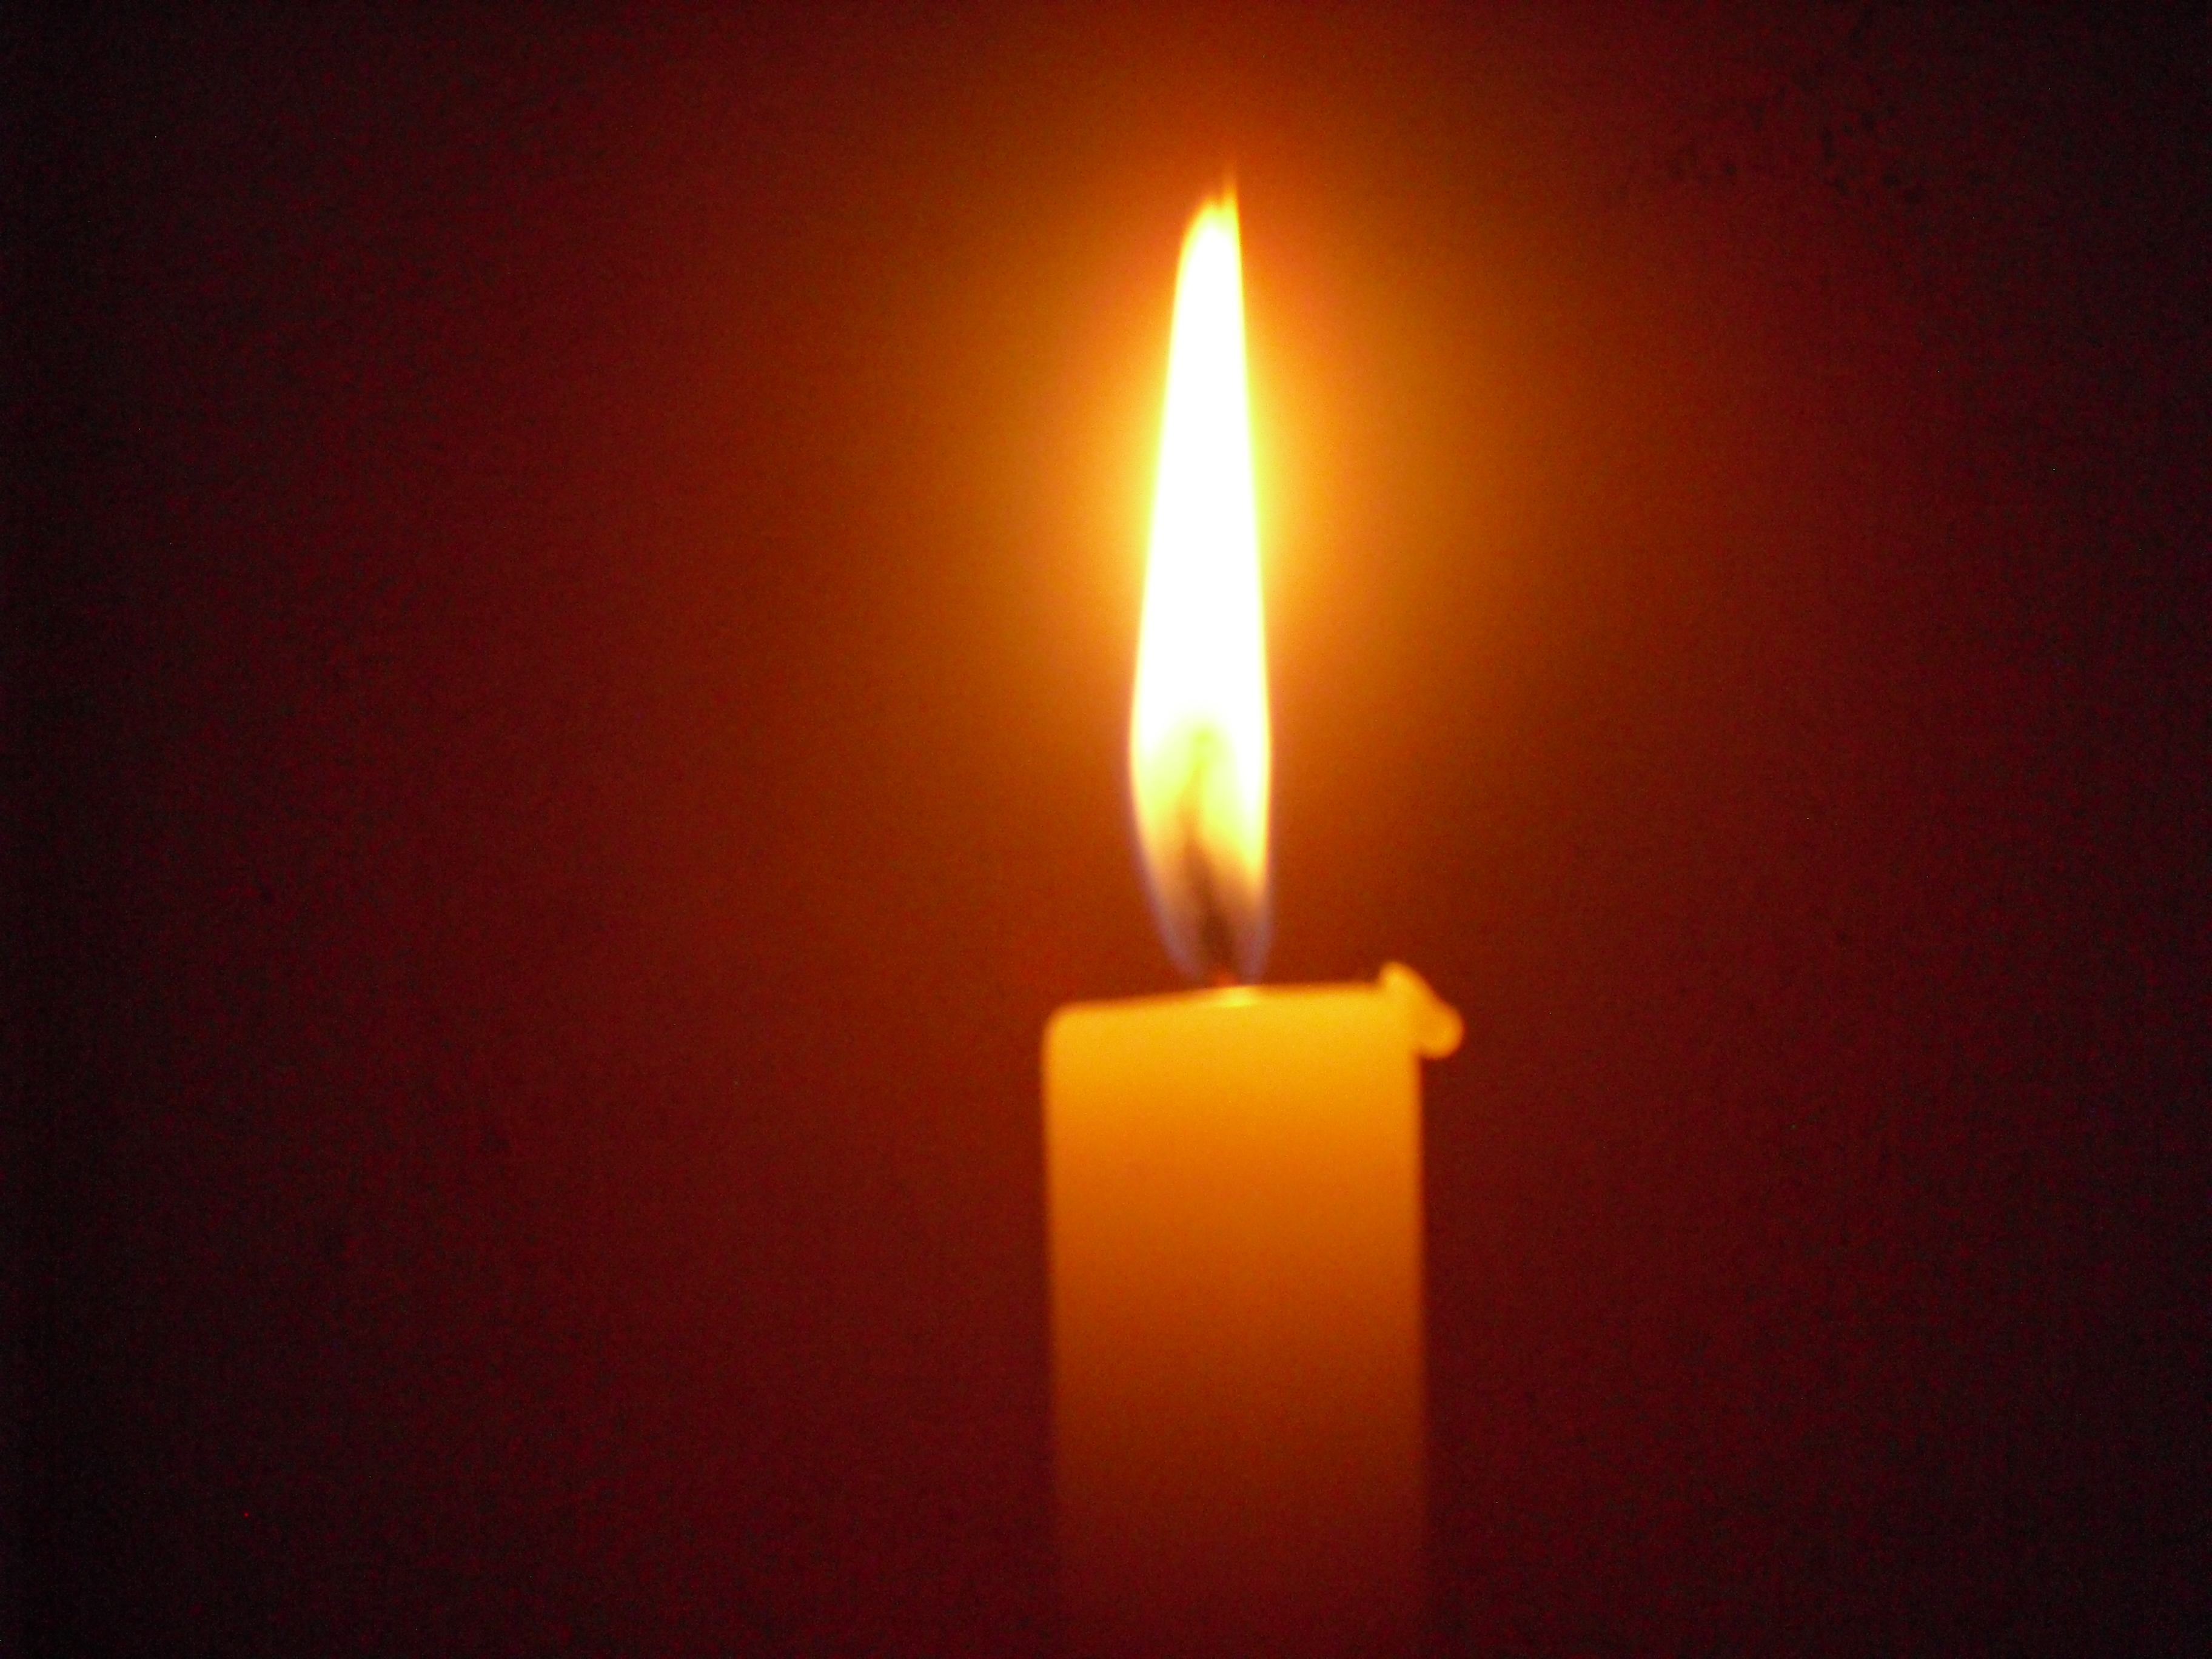 Http Commons Wikimedia Org Wiki File Candle Light Jpg